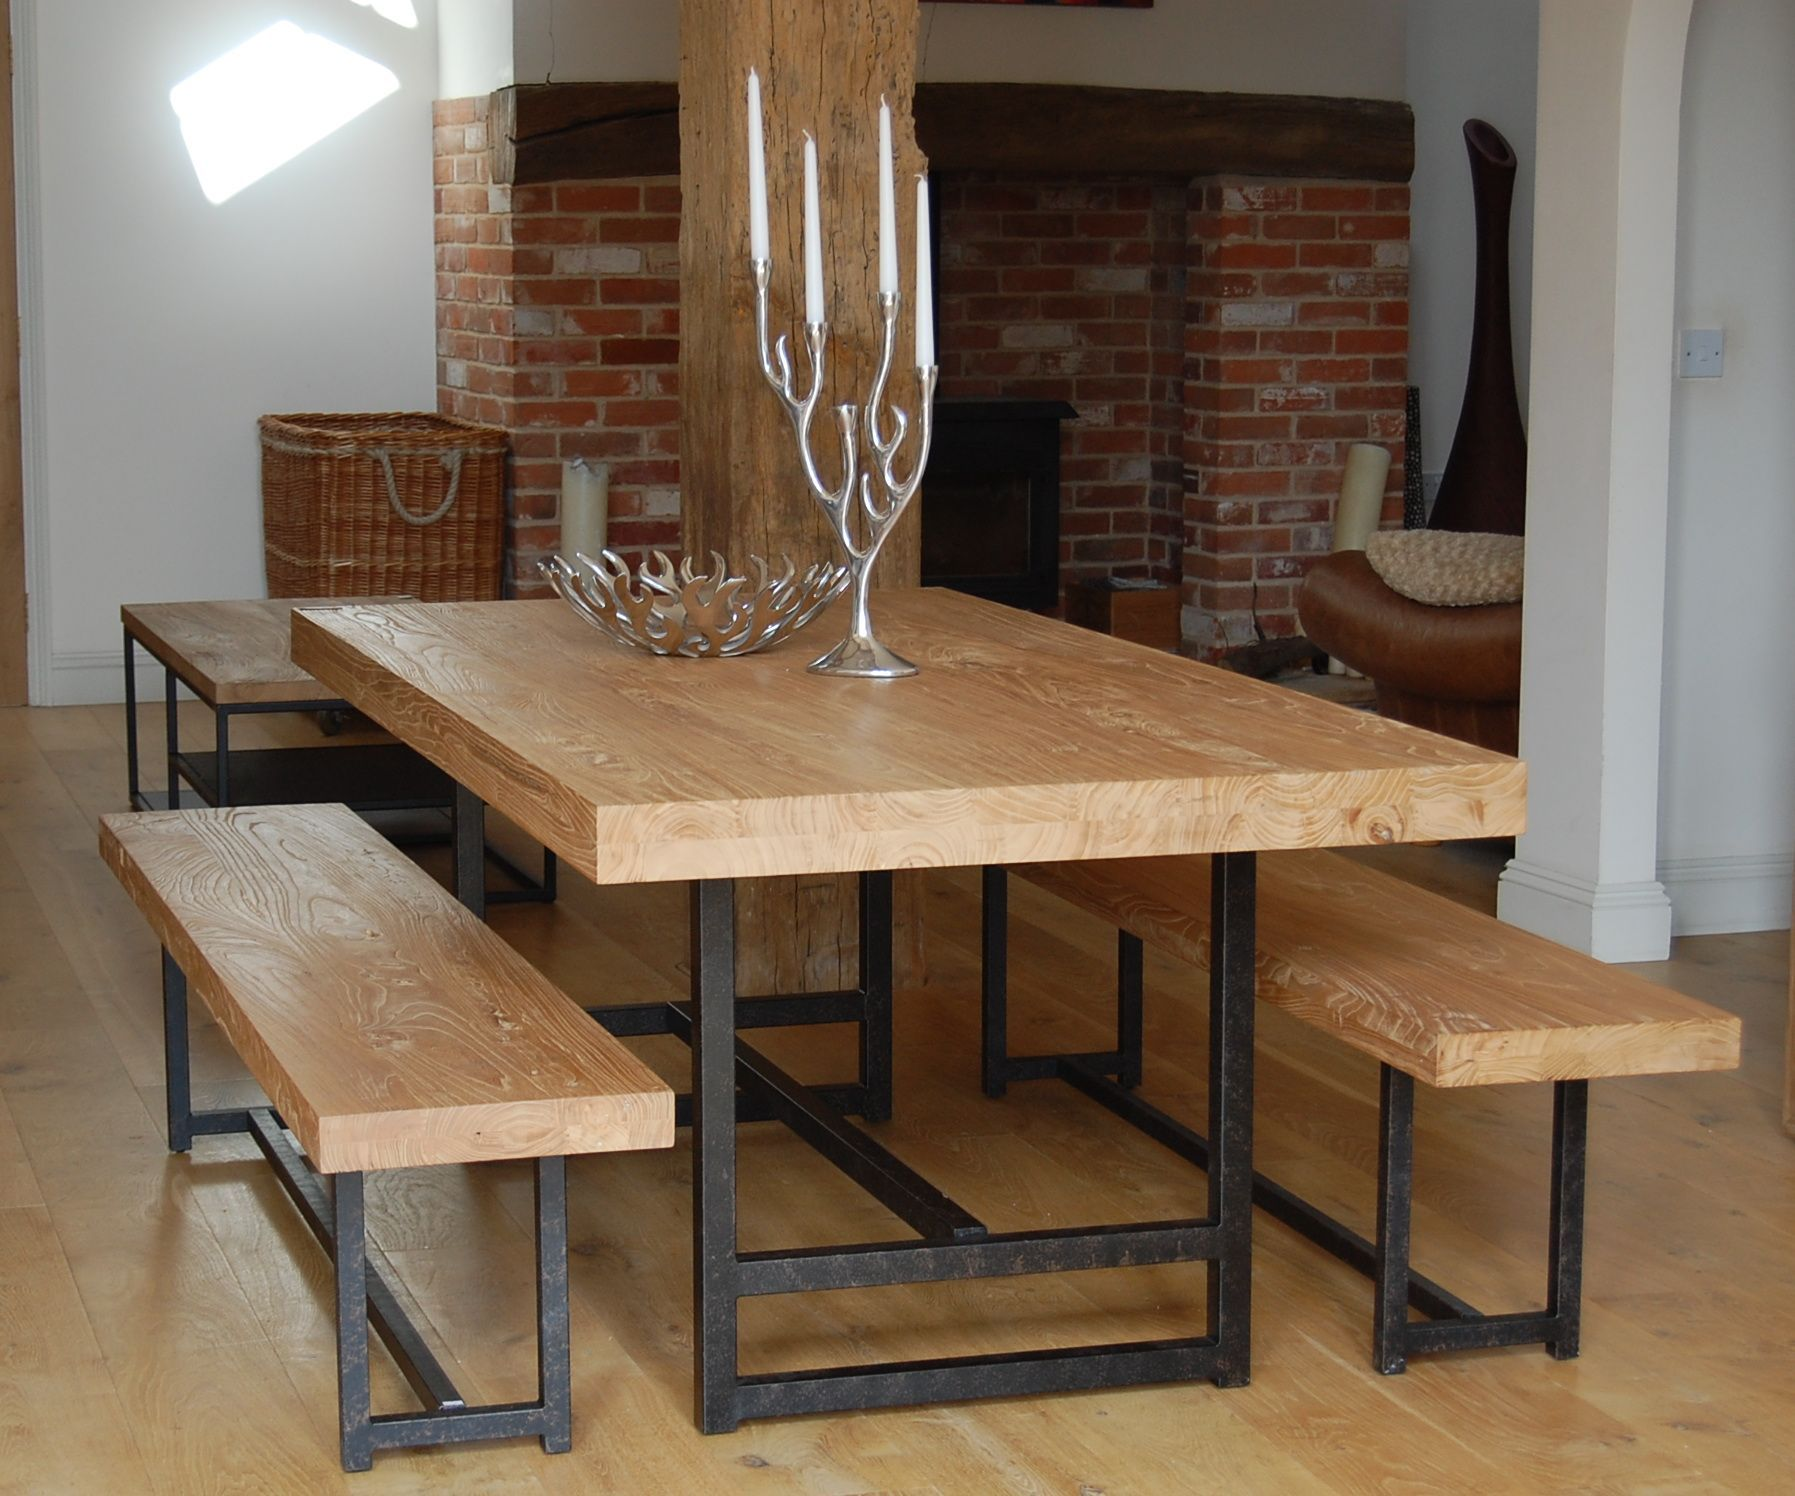 Reclaimed Wood Dining Table Special Offer For Set Reclaimed Wood And Iron Dining Table Kitchen Table Bench Dining Table With Bench Wooden Dining Room Table